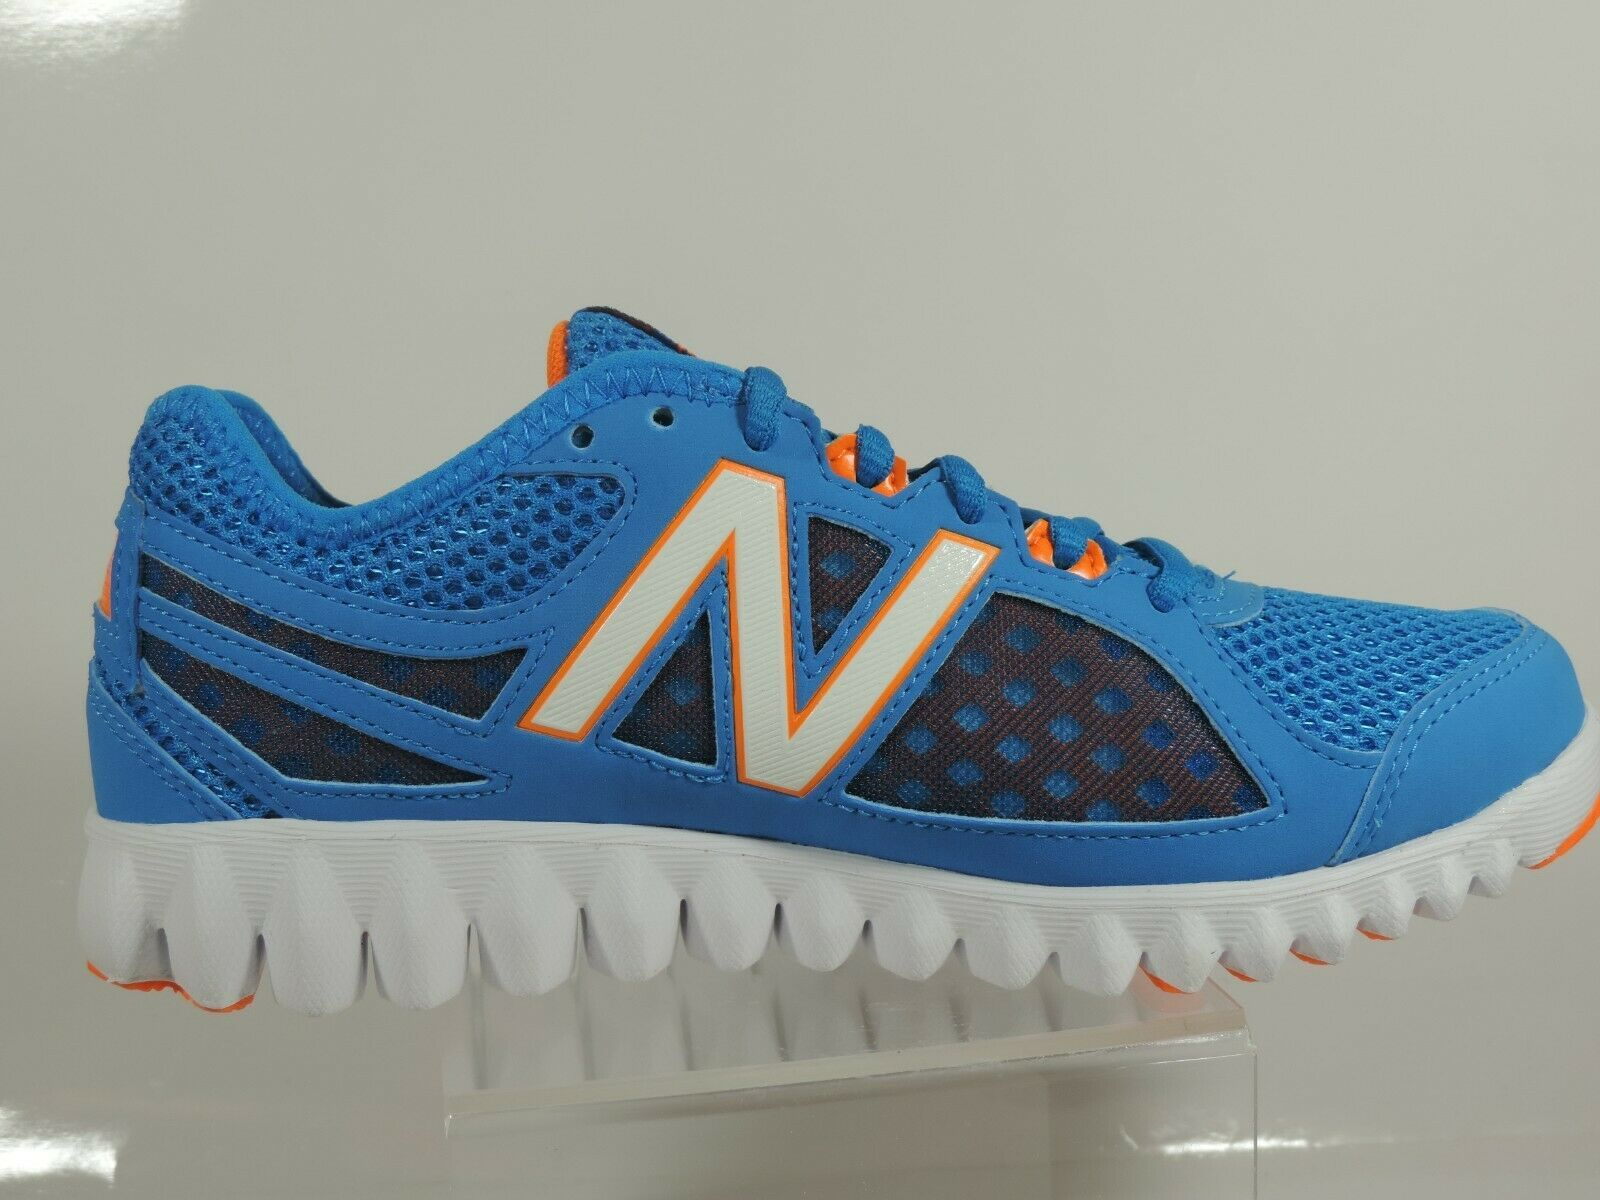 NEW BALANCE WOMENS SHOES WX1157BW SNEAKERS RUNNING BLUE WHITE SZ 6 B image 2